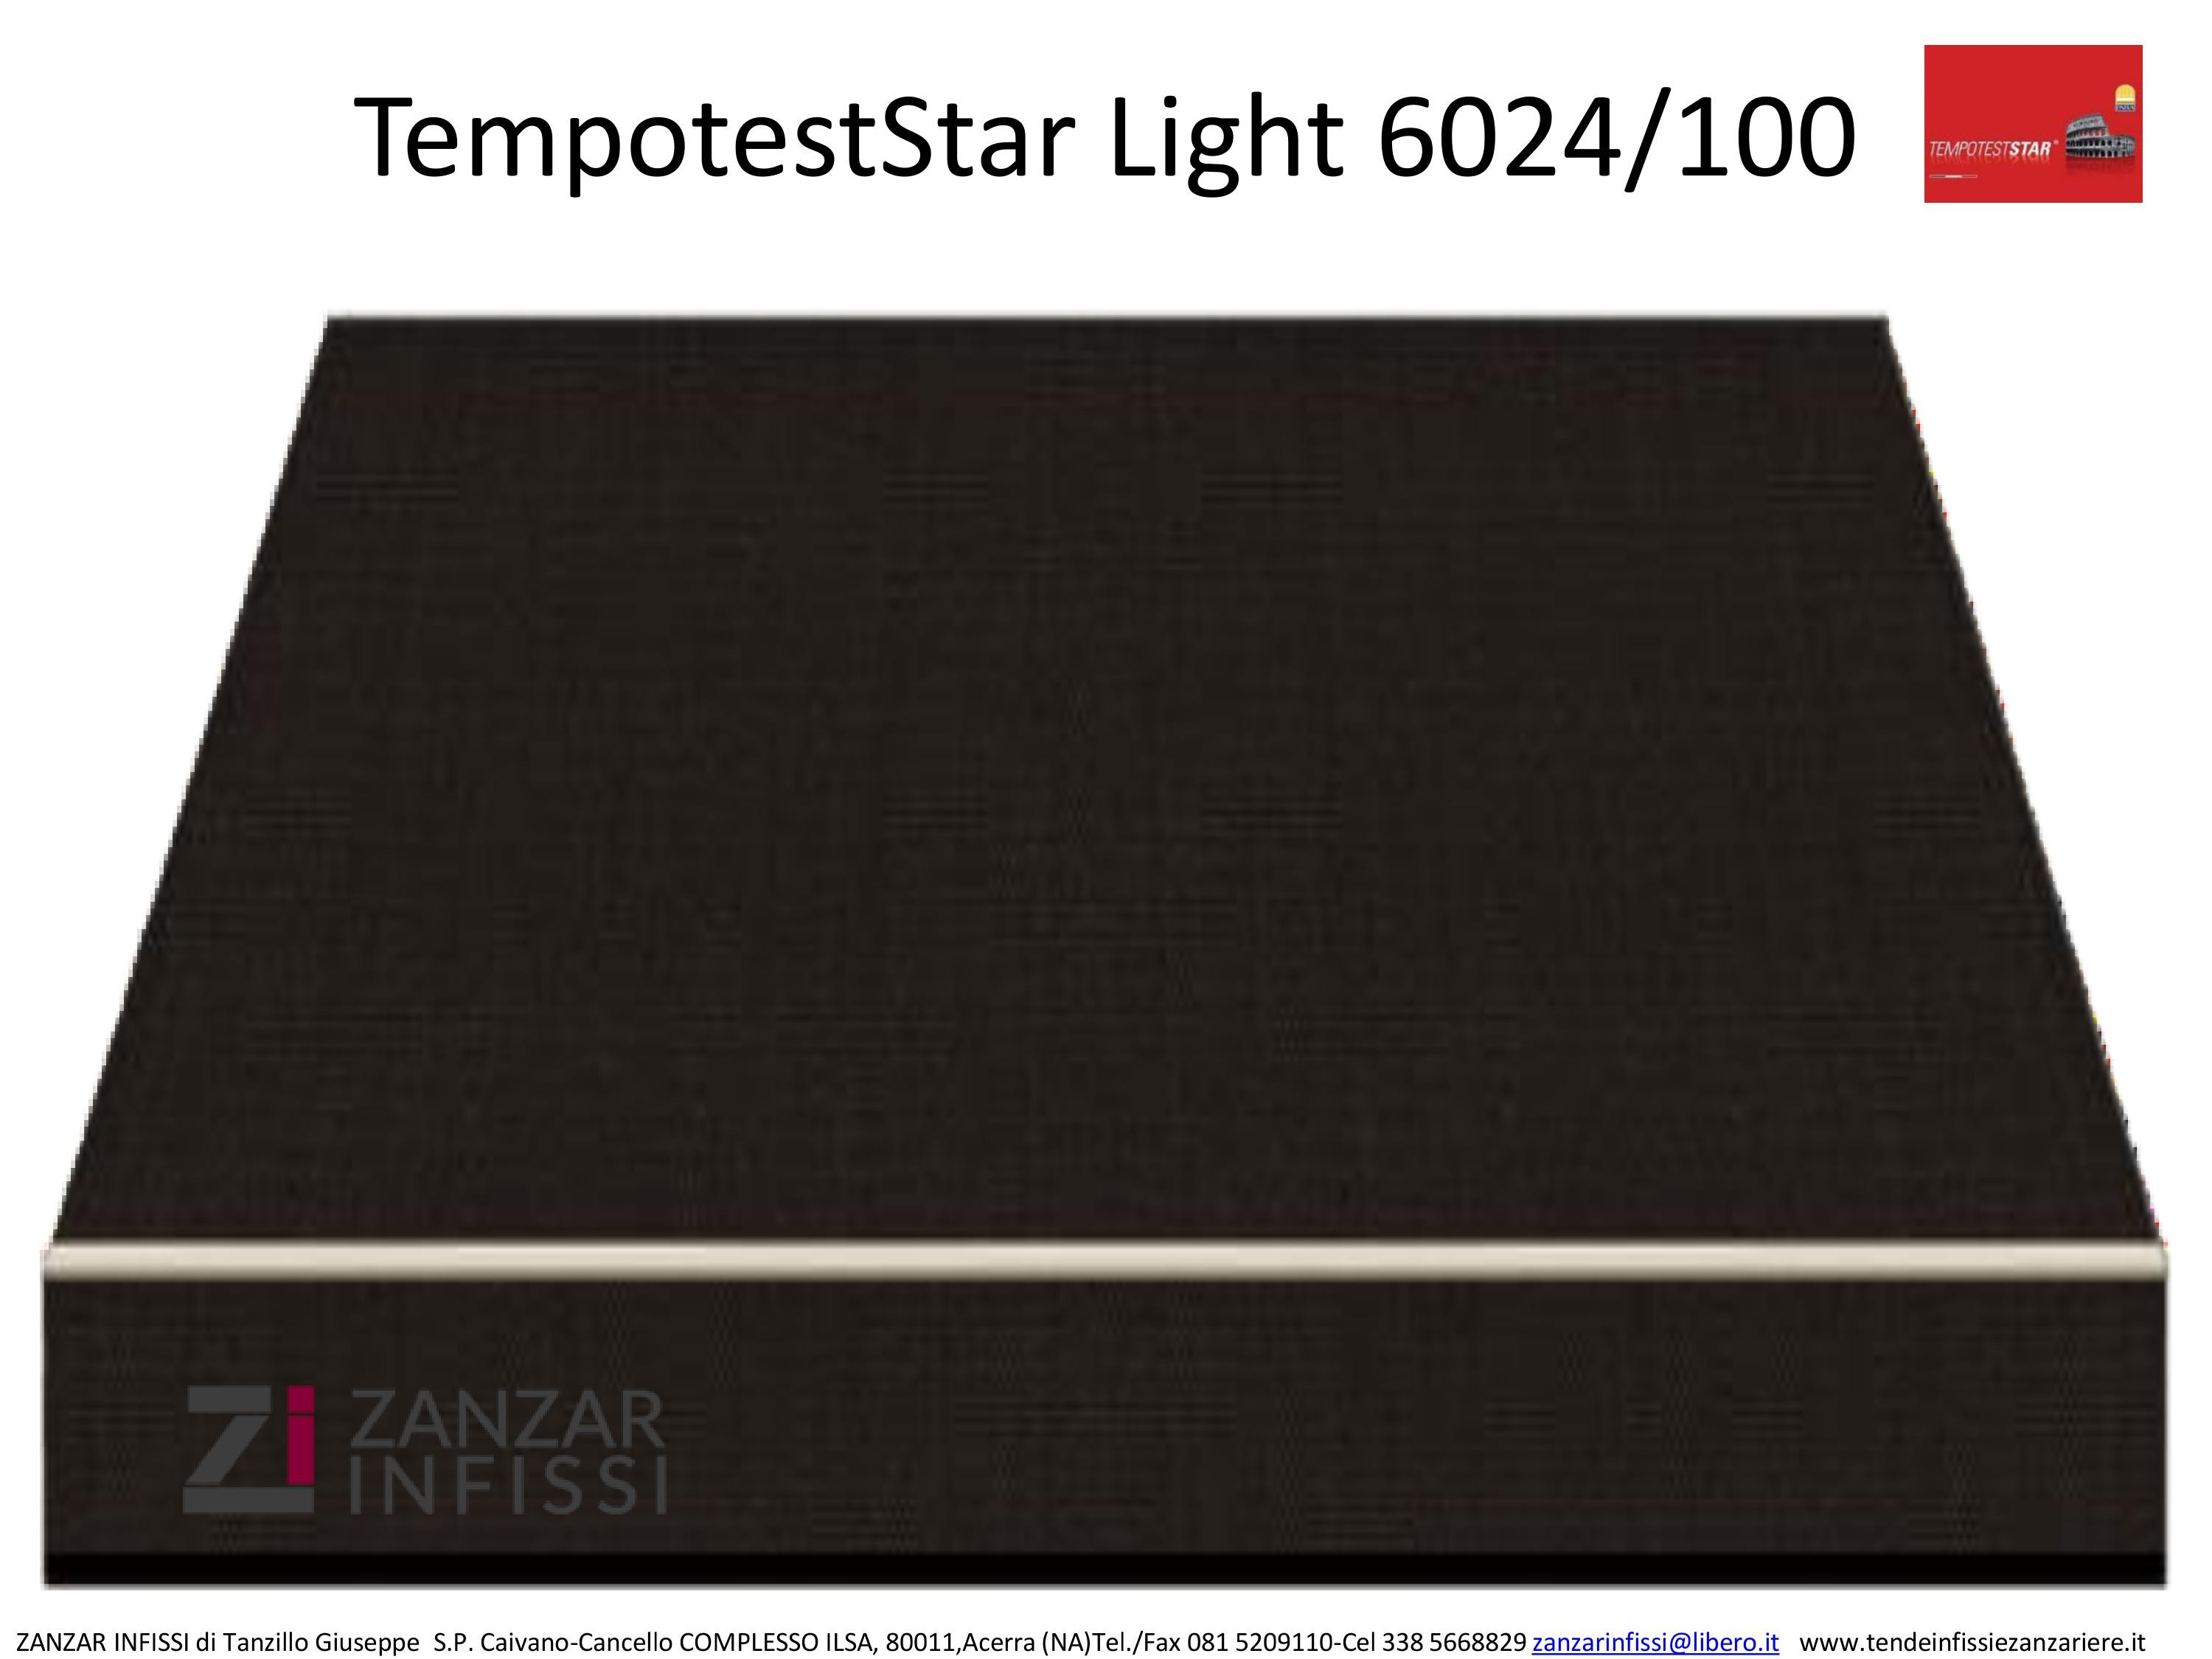 Tempotest star light 6024/100